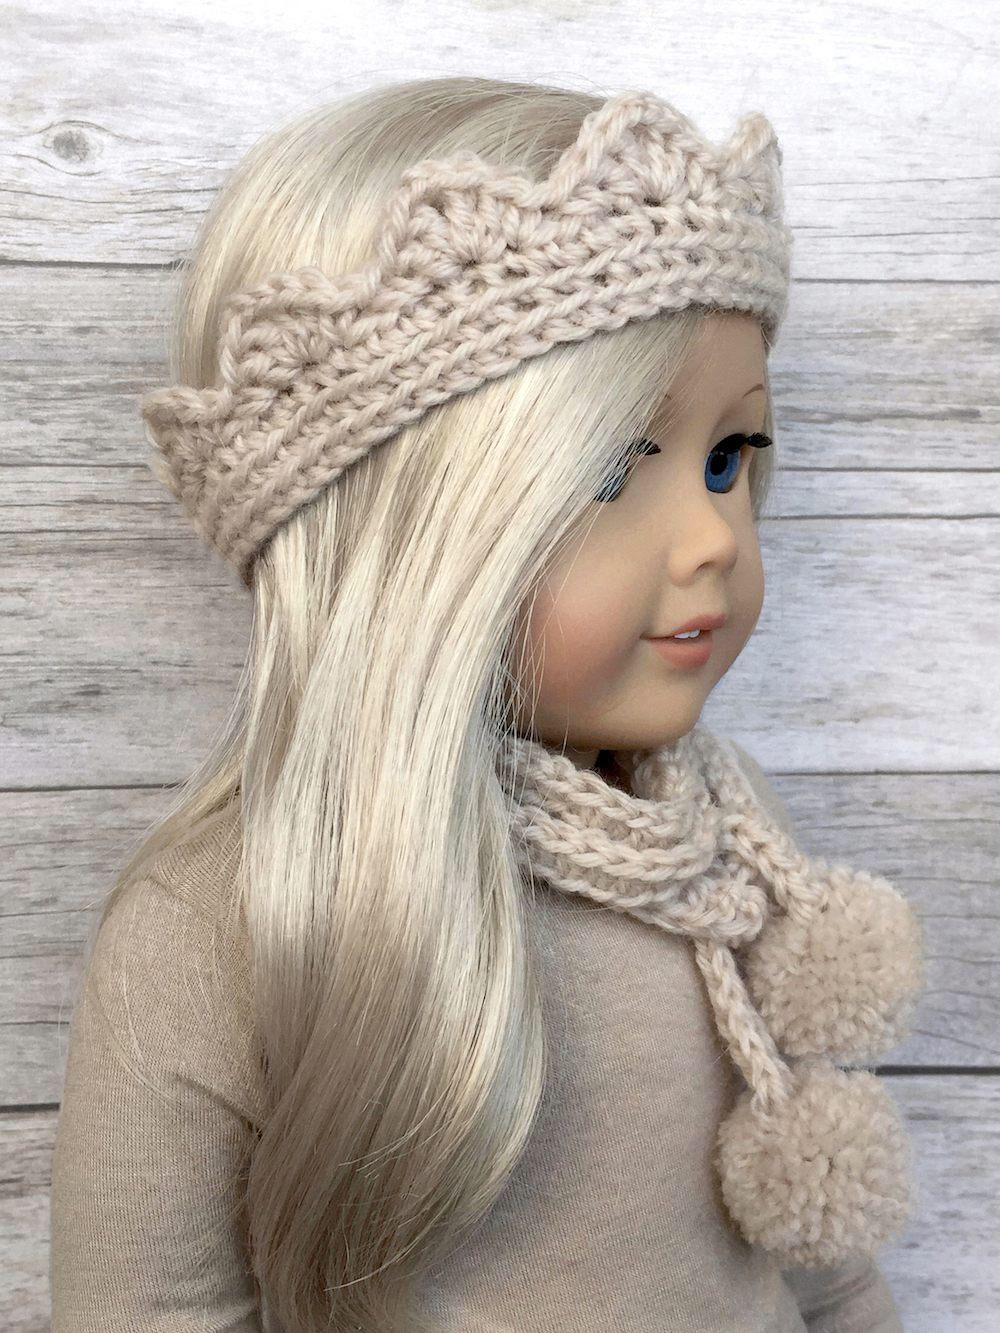 DIY Crochet Pattern – 18 inch Doll Tiara/Crown Headband and Skinny ...